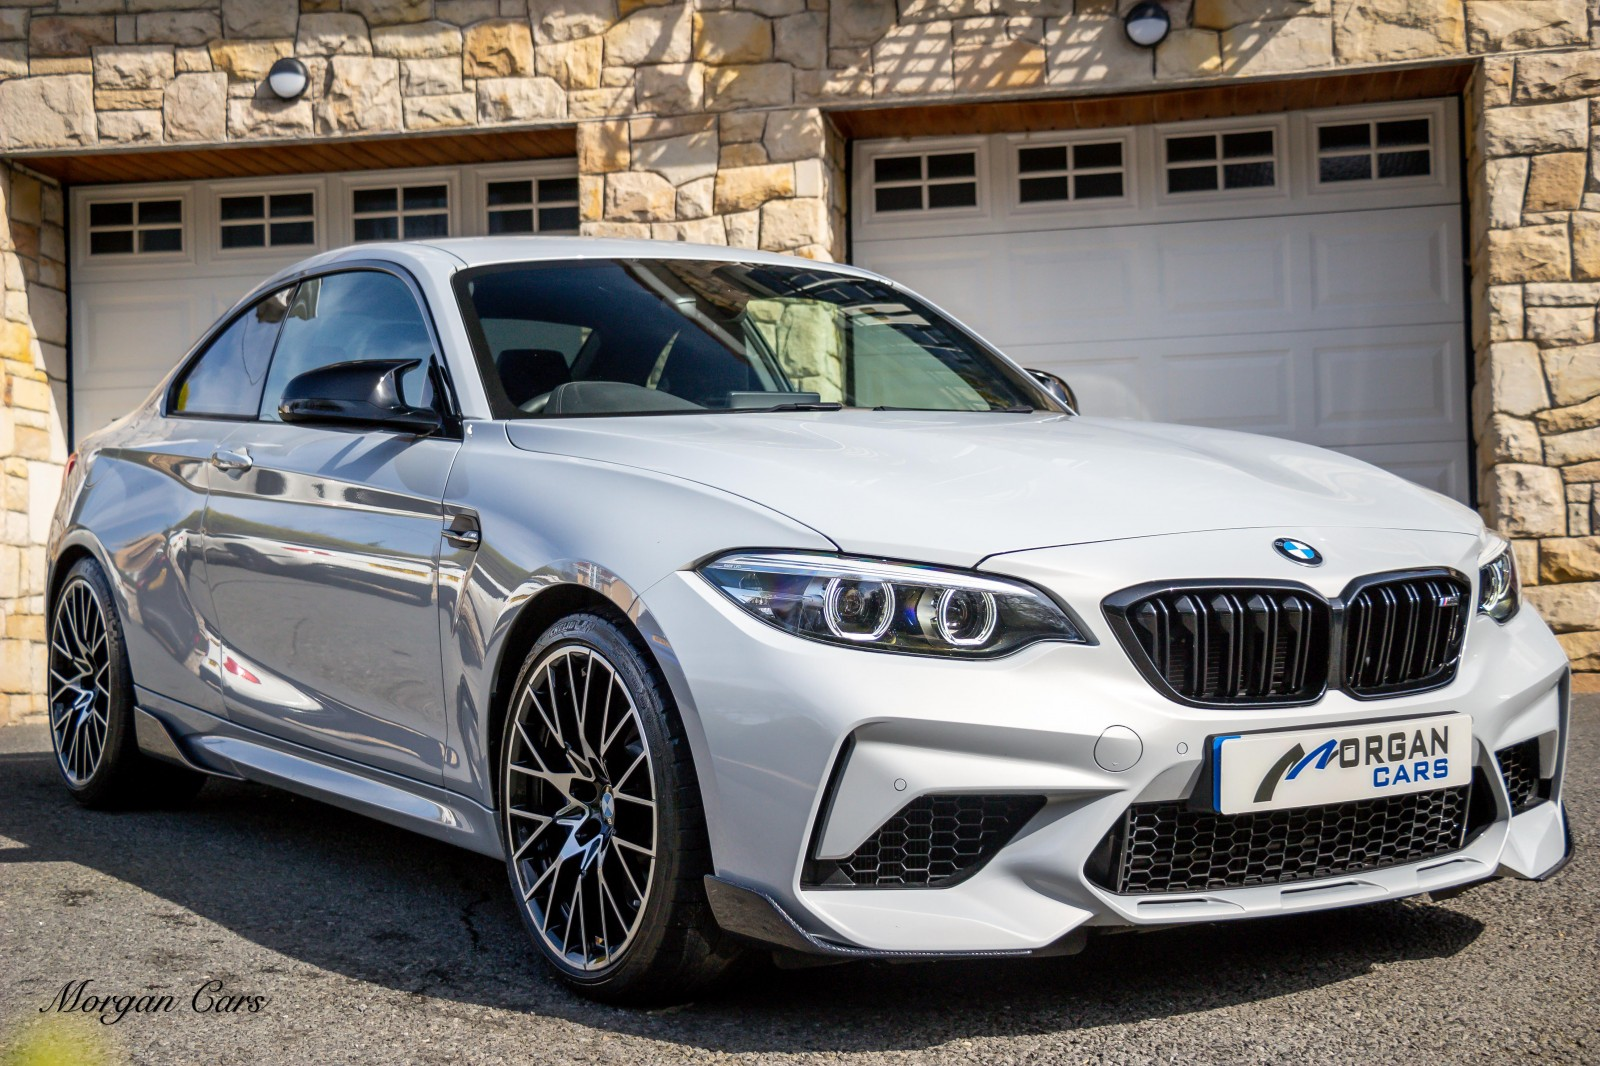 2019 BMW 2 Series M2 COMPETITION DCT Petrol Automatic – Morgan Cars 9 Mound Road, Warrenpoint, Newry BT34 3LW, UK full